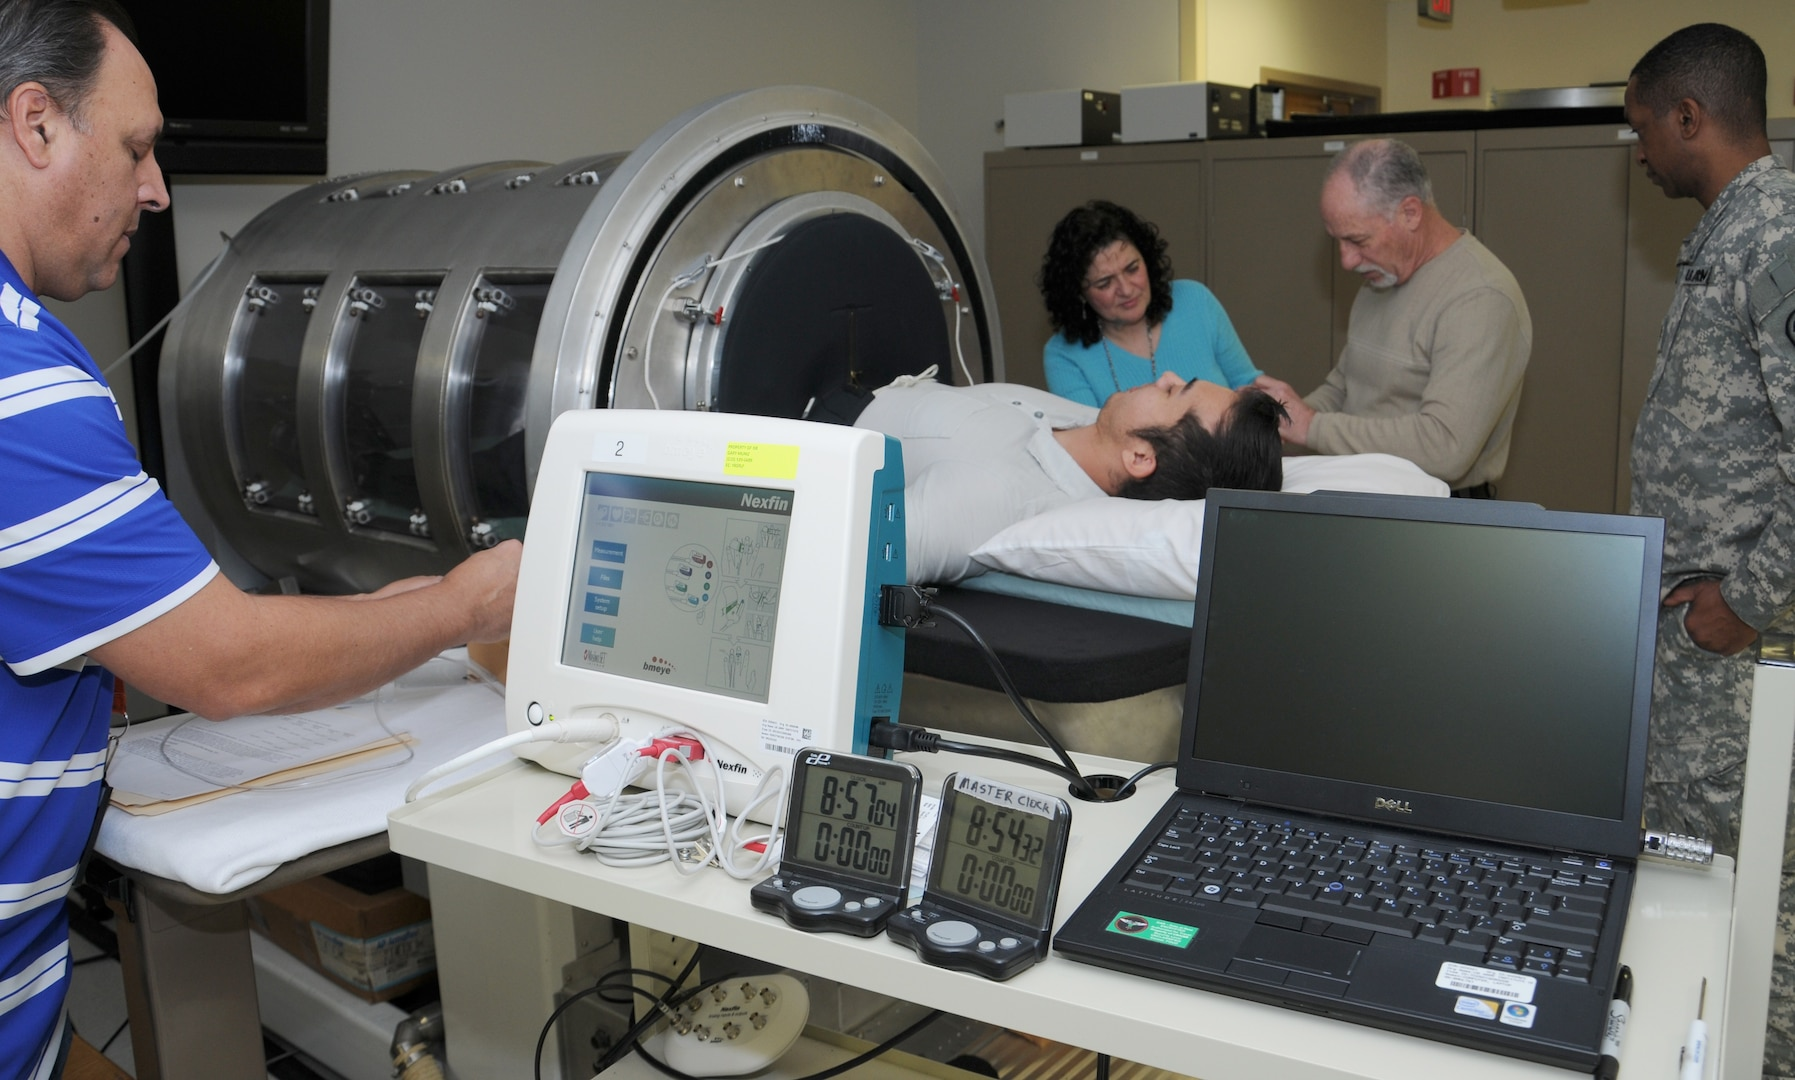 """(From left) Gary Muniz, Carmen Hinojosa-Laborde and Victor """"Vic"""" Convertino from the U.S. Army Institute of Surgical Research at Joint Base San Antonio-Fort Sam Houston place monitors on a volunteer in the lower body negative pressure chamber to collect physiological data as part of a research protocol as Lt. Col. Robert Carter (right) from USAISR looks on."""